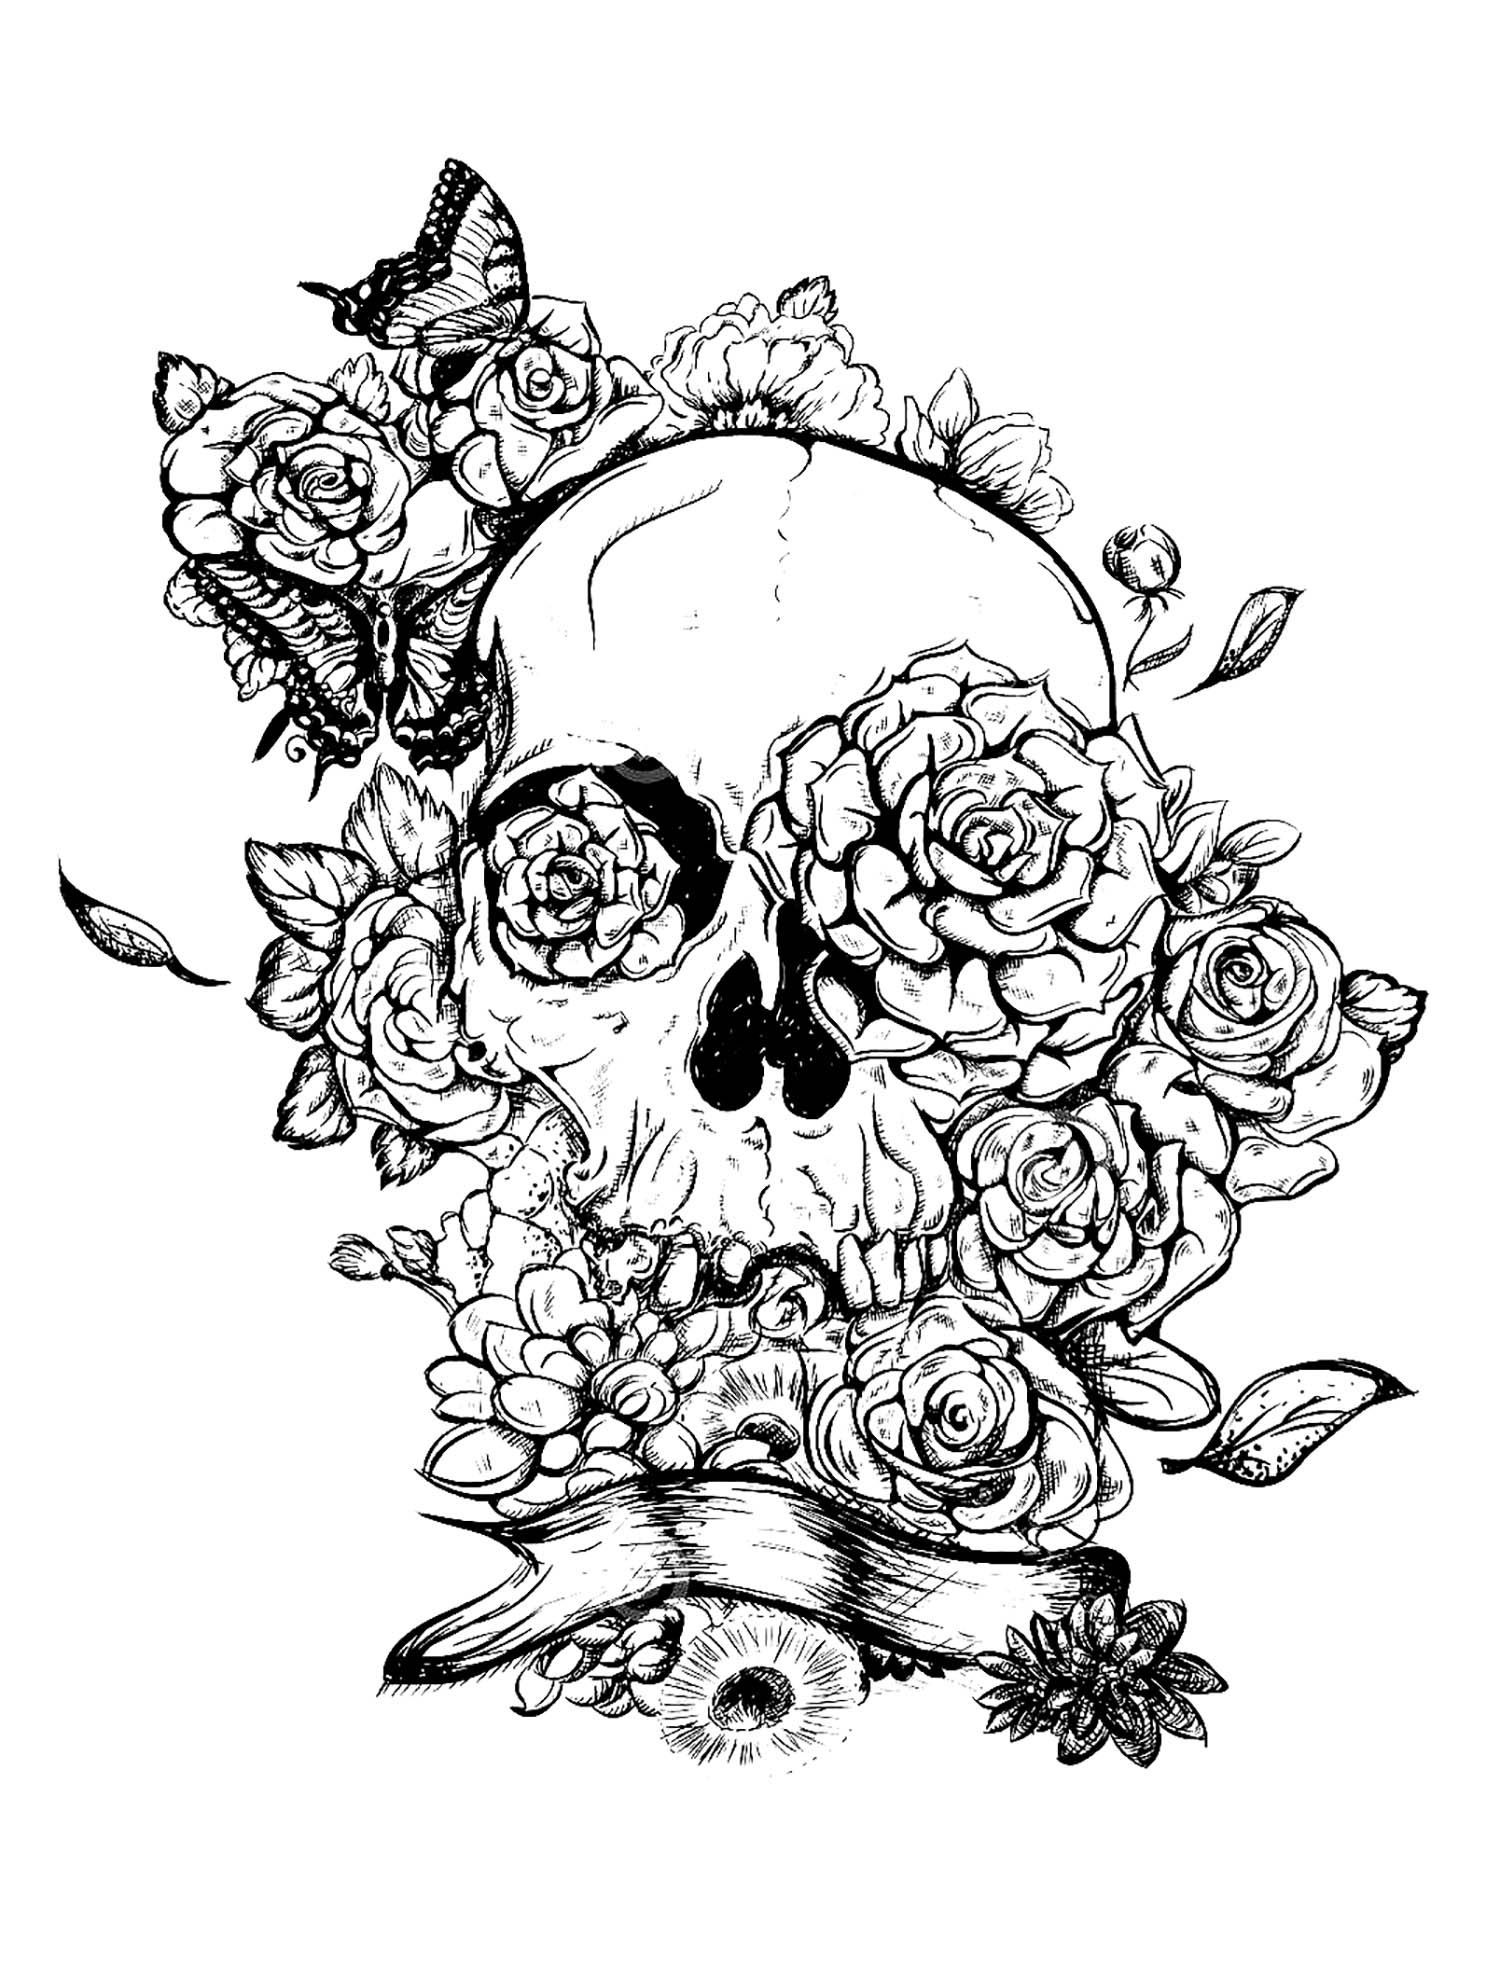 free tattoo coloring pages floral tattoo designs by erik siuda review gt coloring pages tattoo free coloring